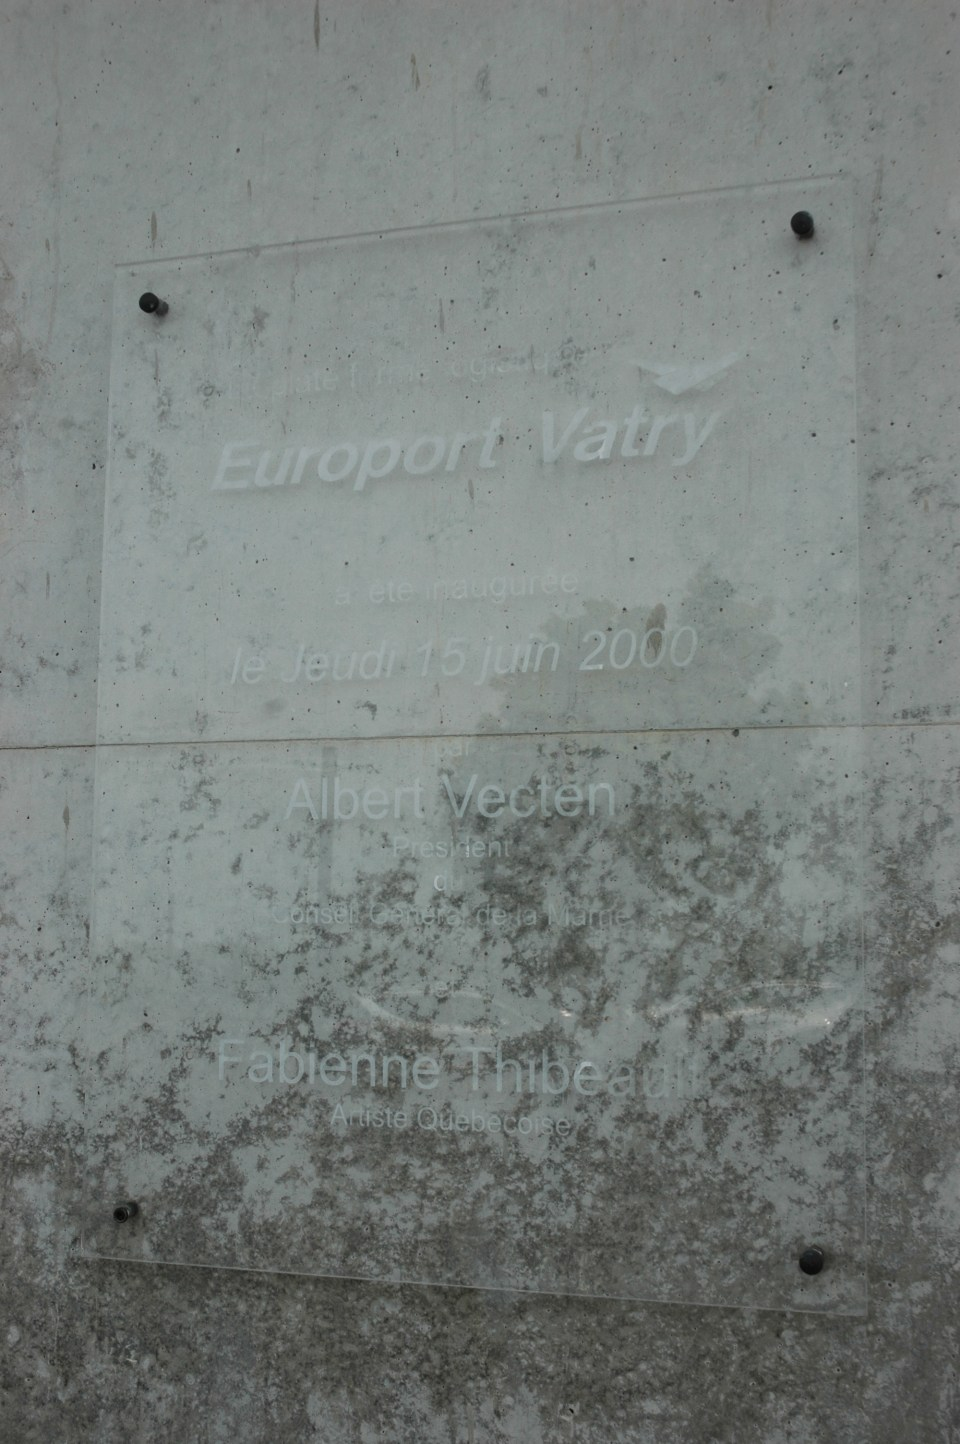 Plaque Europort Paris Vatry Bussy-Lettrée Marne (51)